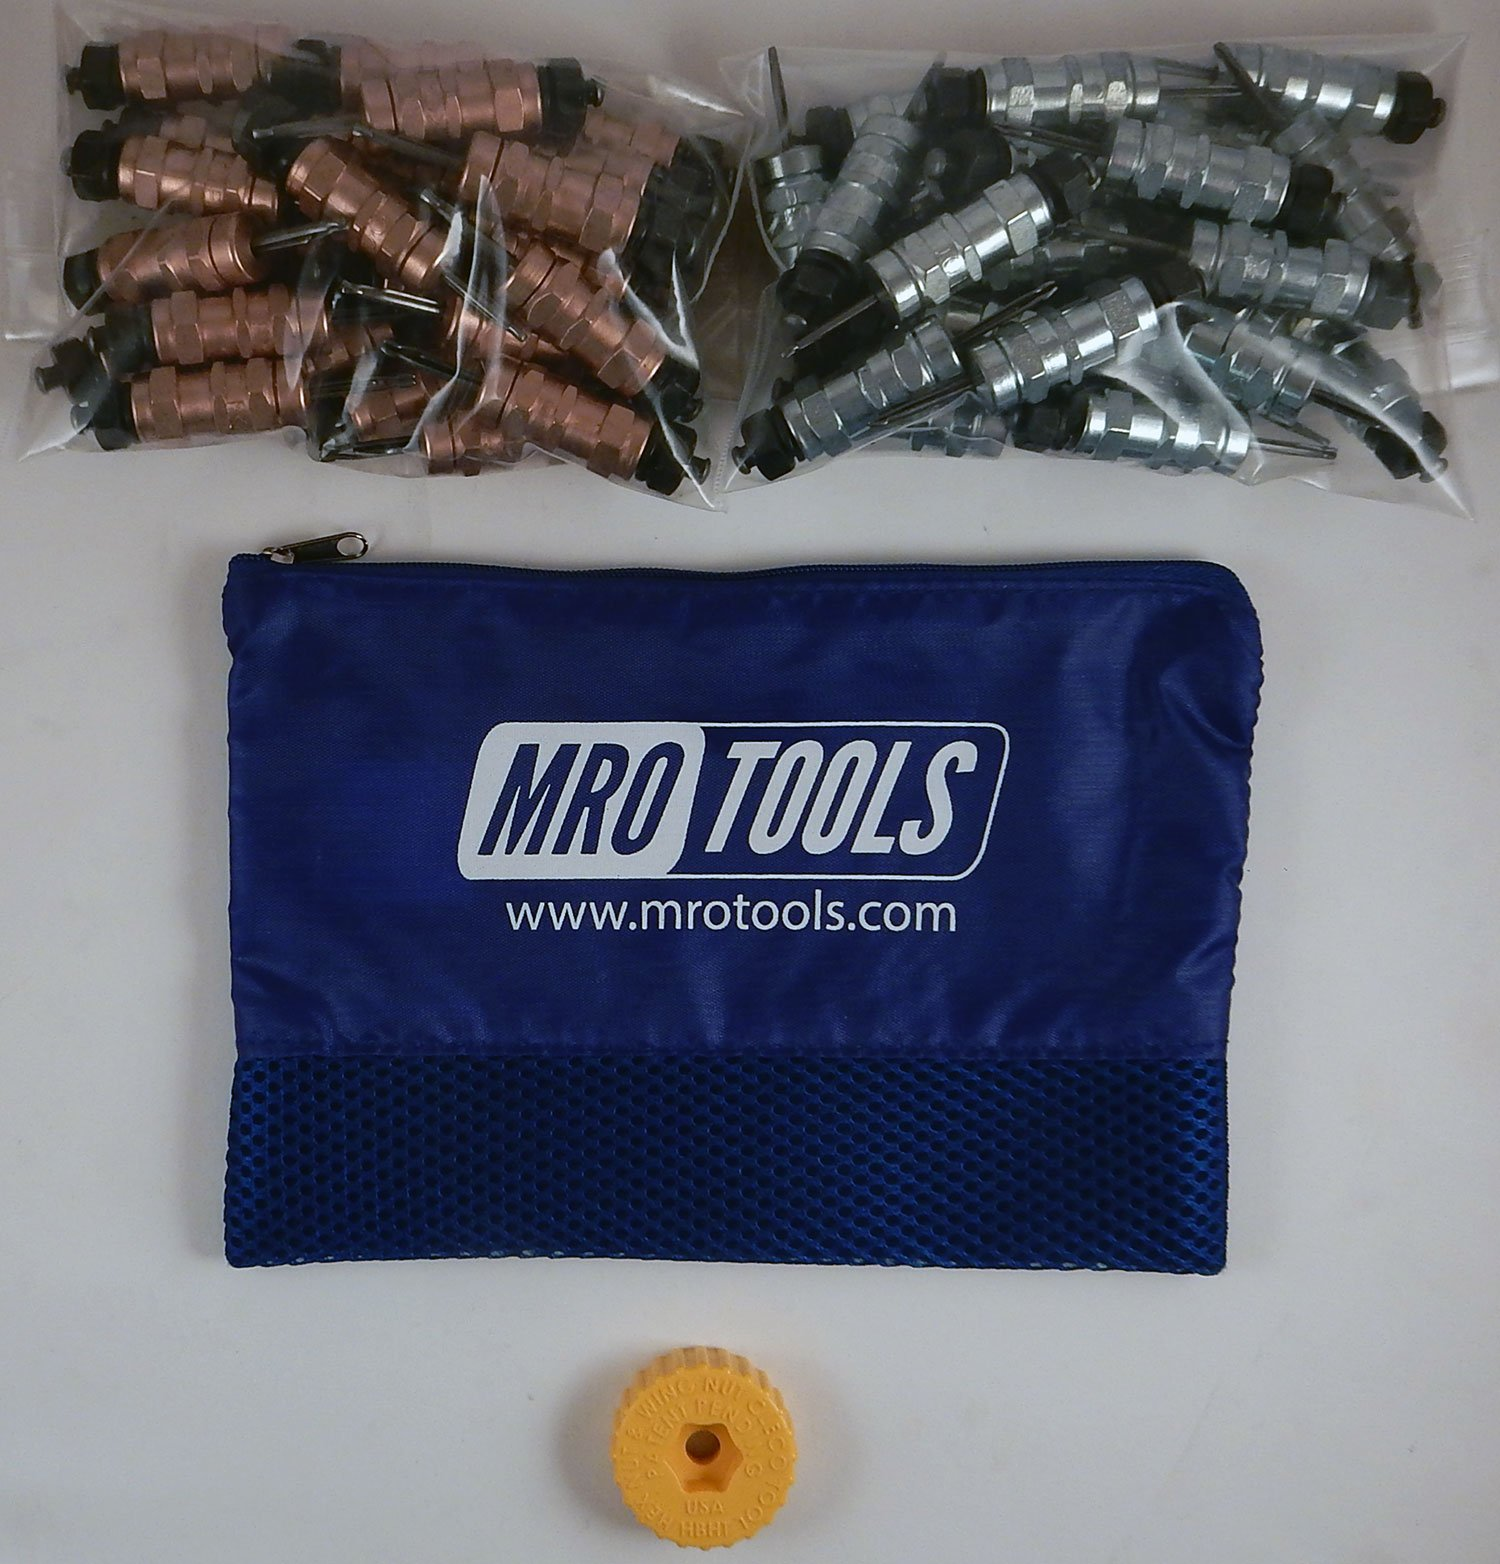 25 1/8 & 25 3/32 Standard Hex-Nut Cleco Fasteners w/ HBHT Tool & Bag (KHN4S50-3) by MRO Tools Cleco Fasteners